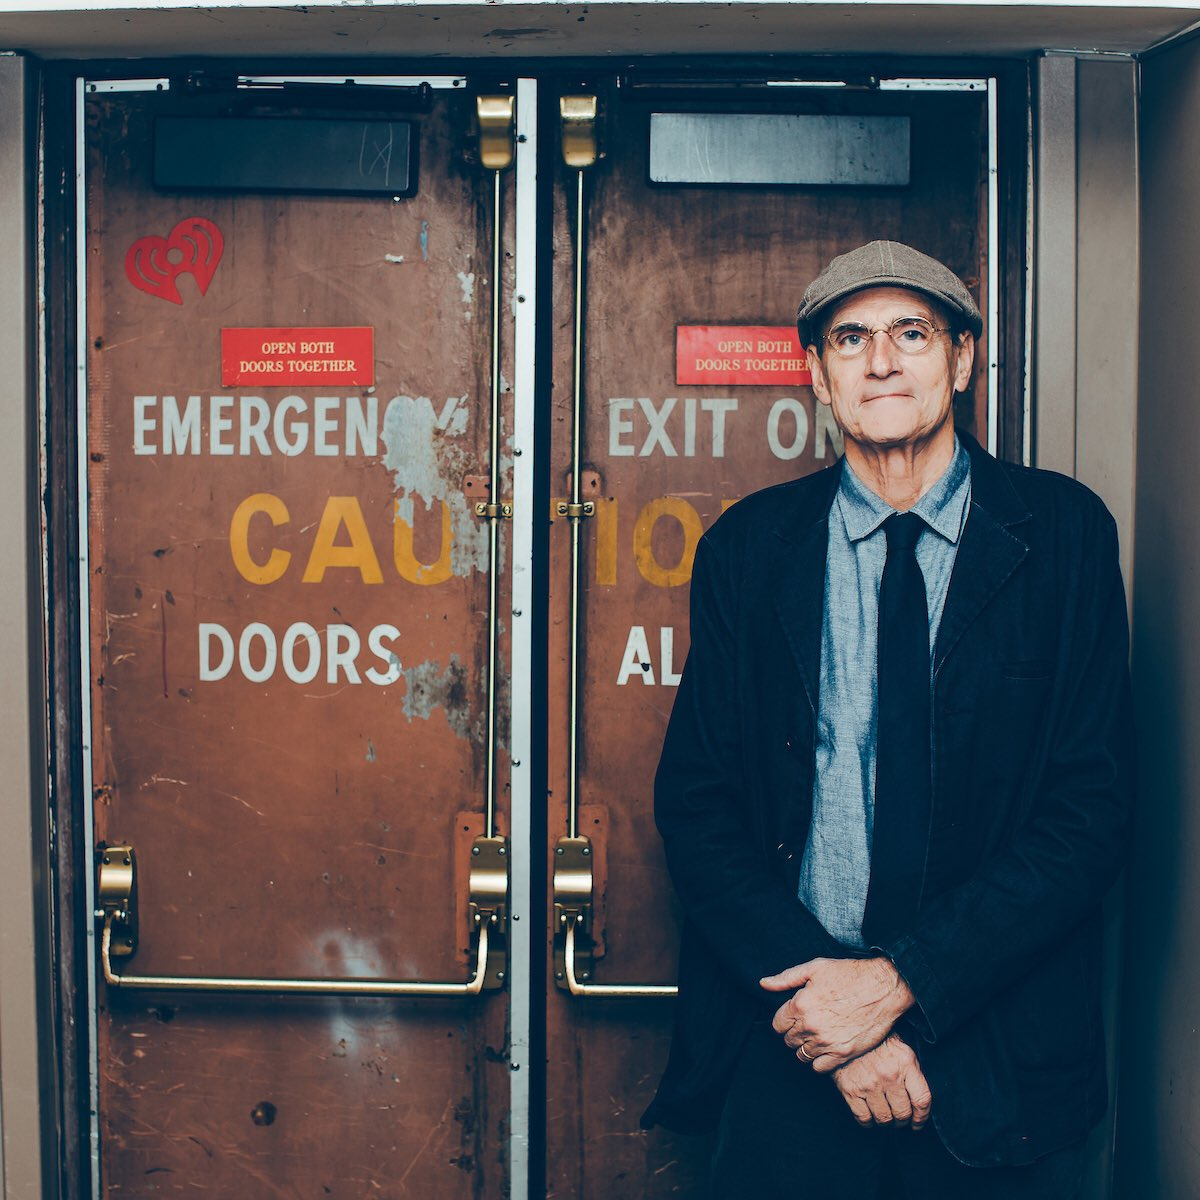 An American Icon 🌟 The legendary James Taylor is taking the stage inside our @iHeartTheaterNY tonight to perform some of his classic hits and songs from his new album #AmericanStandard 🎶  WATCH LIVE AT 7PM ET / 4PM PT at:    #iHeartJamesTaylor